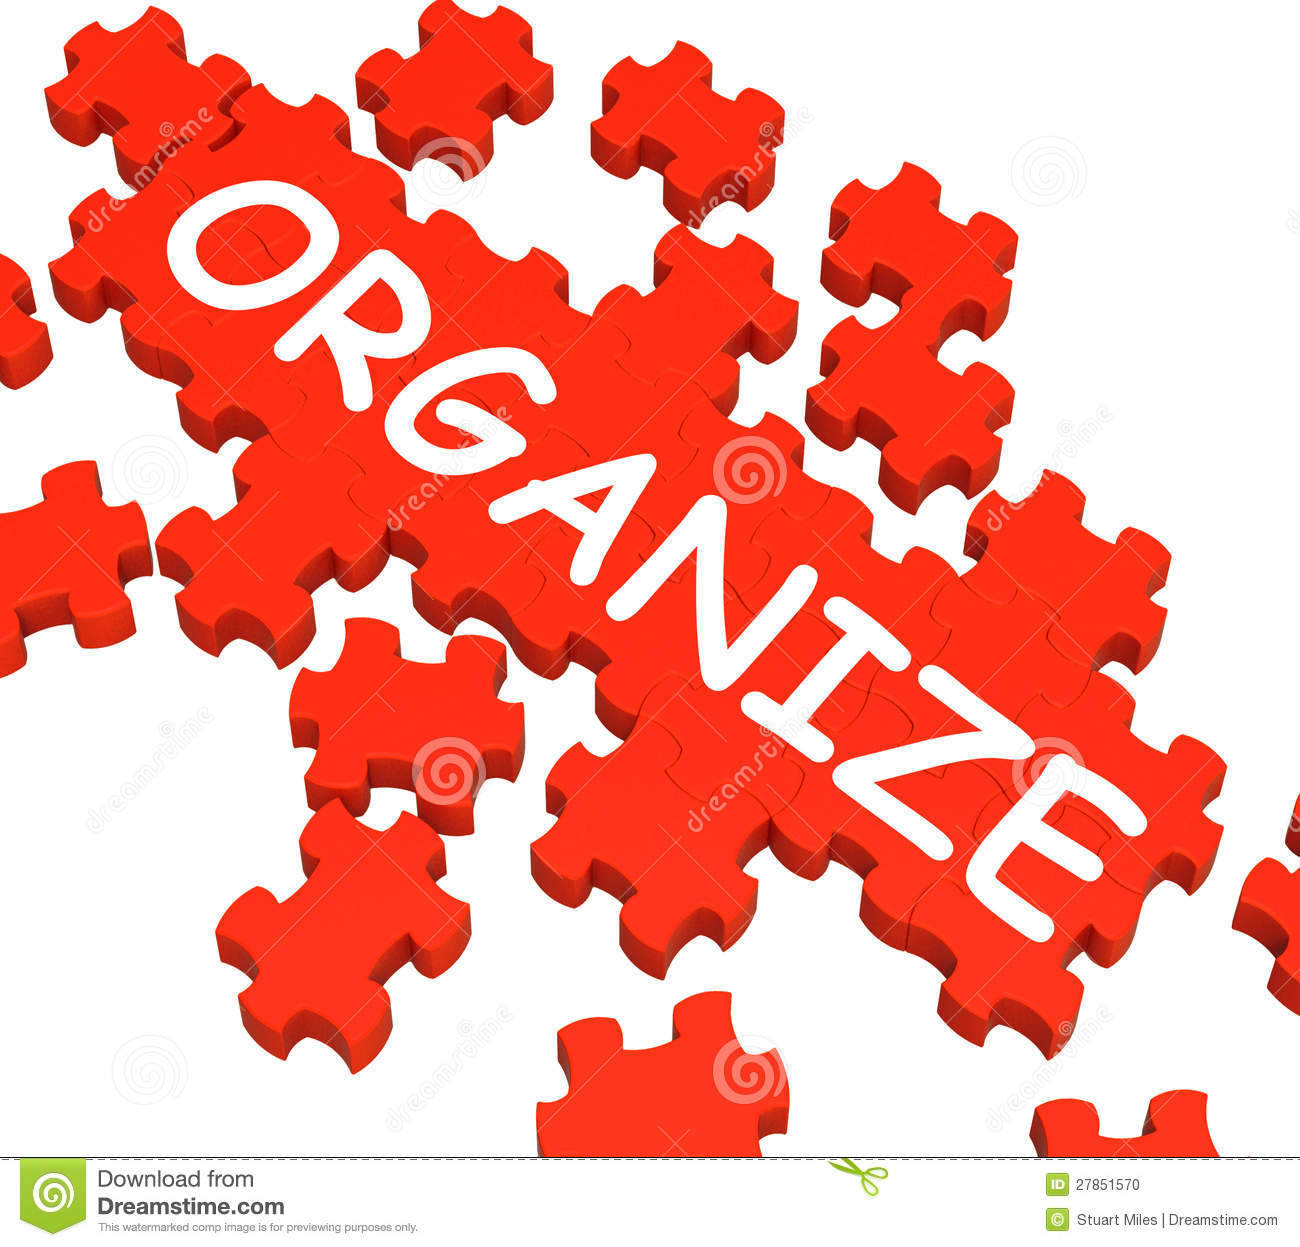 Organize Puzzle Shows Arranging Or Organizing Stock Photo - Image ...